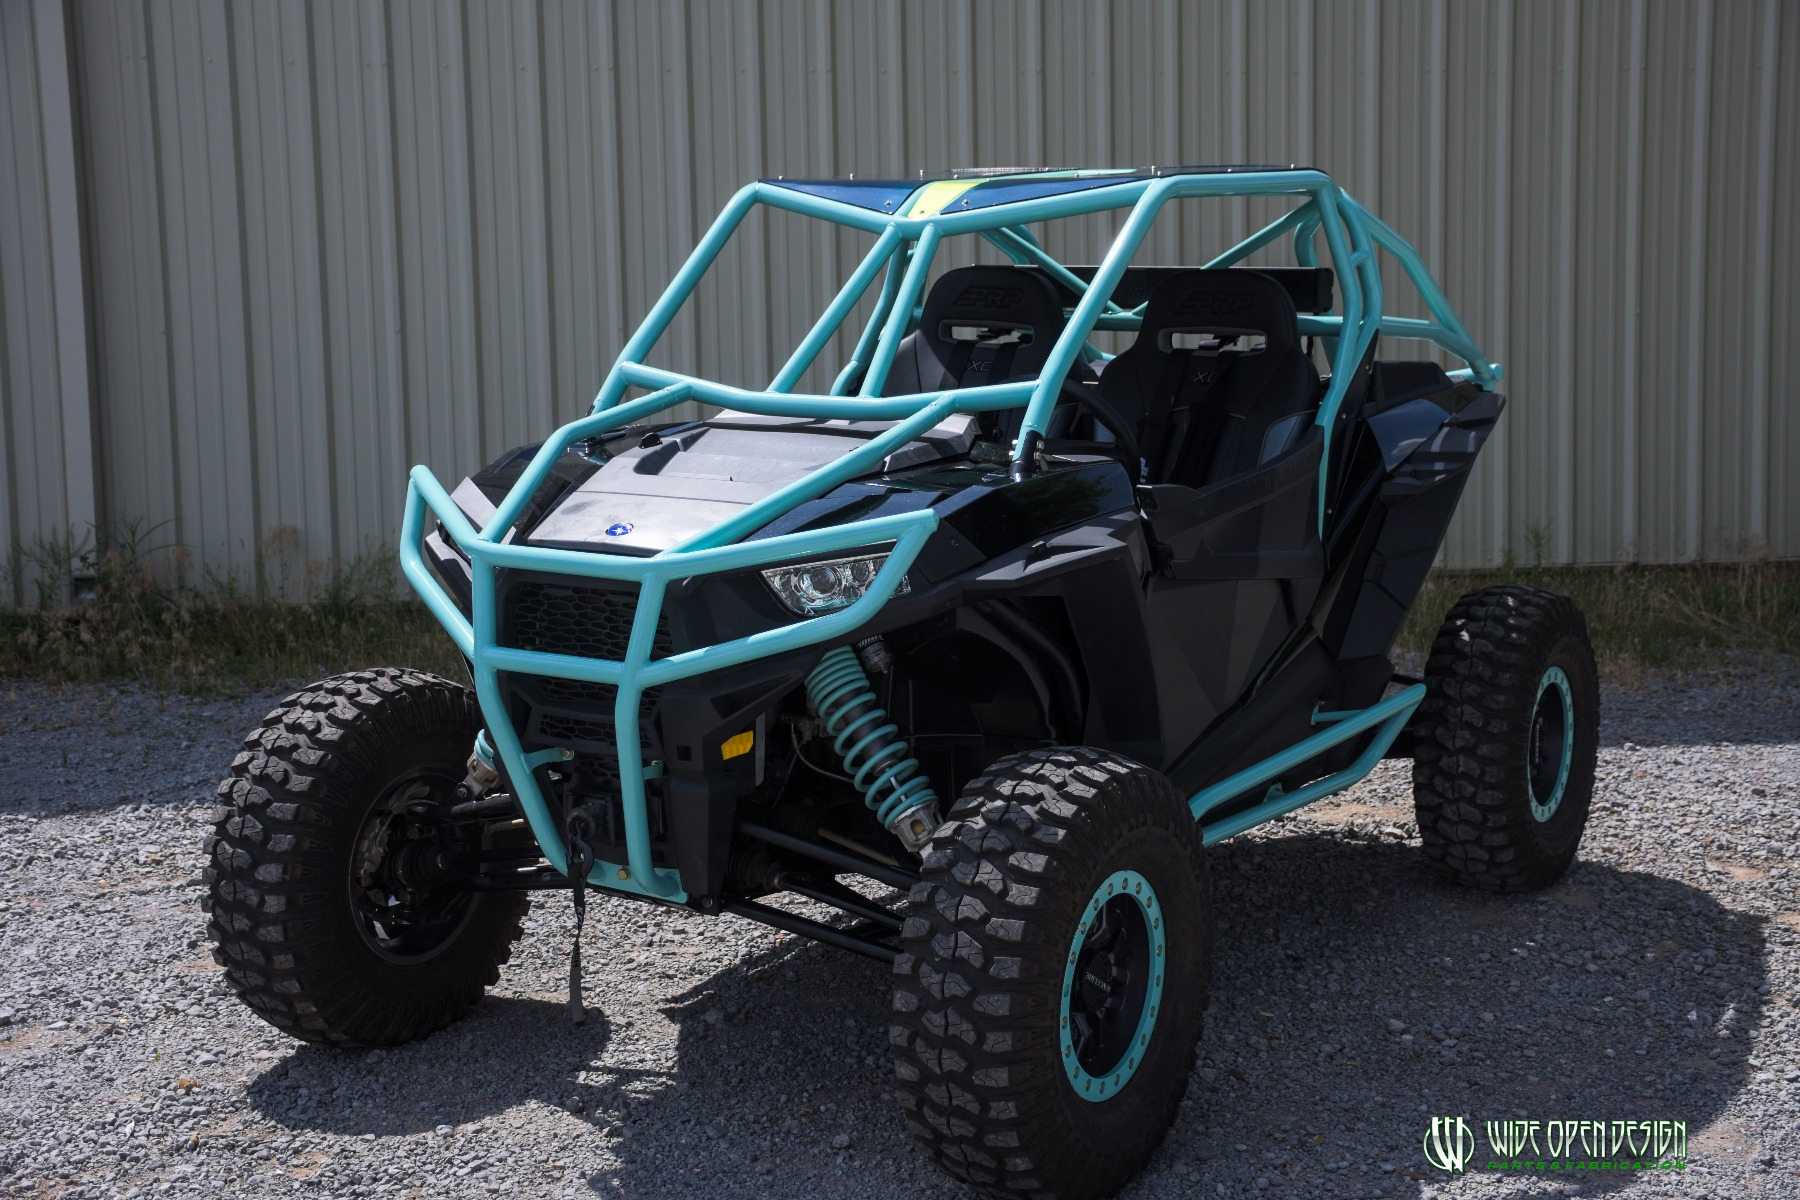 Wide Open Design UTV Cage RZR Cage Double Down featuring Double Pillars 29